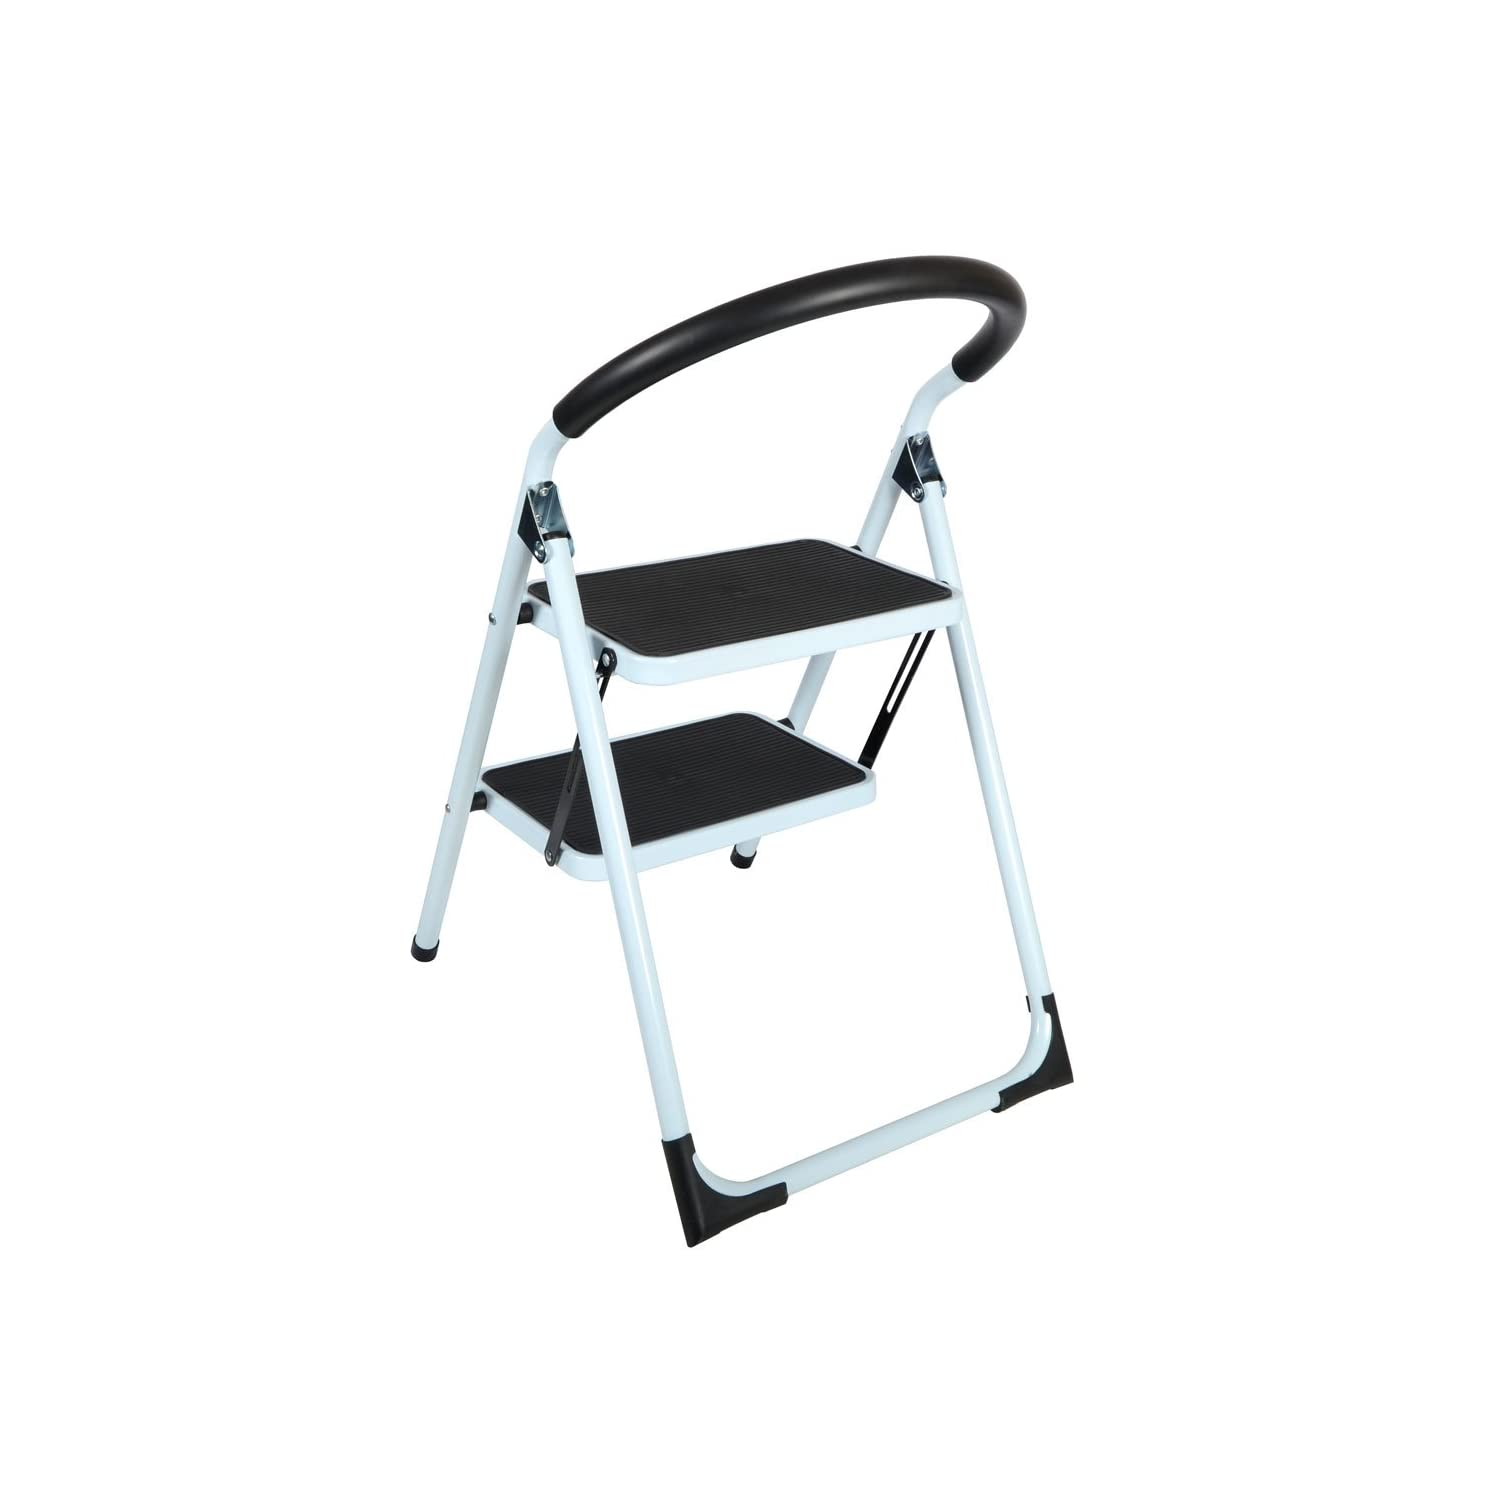 New 2 Tier Non Slip Folding Step Ladder Tread Stepladder